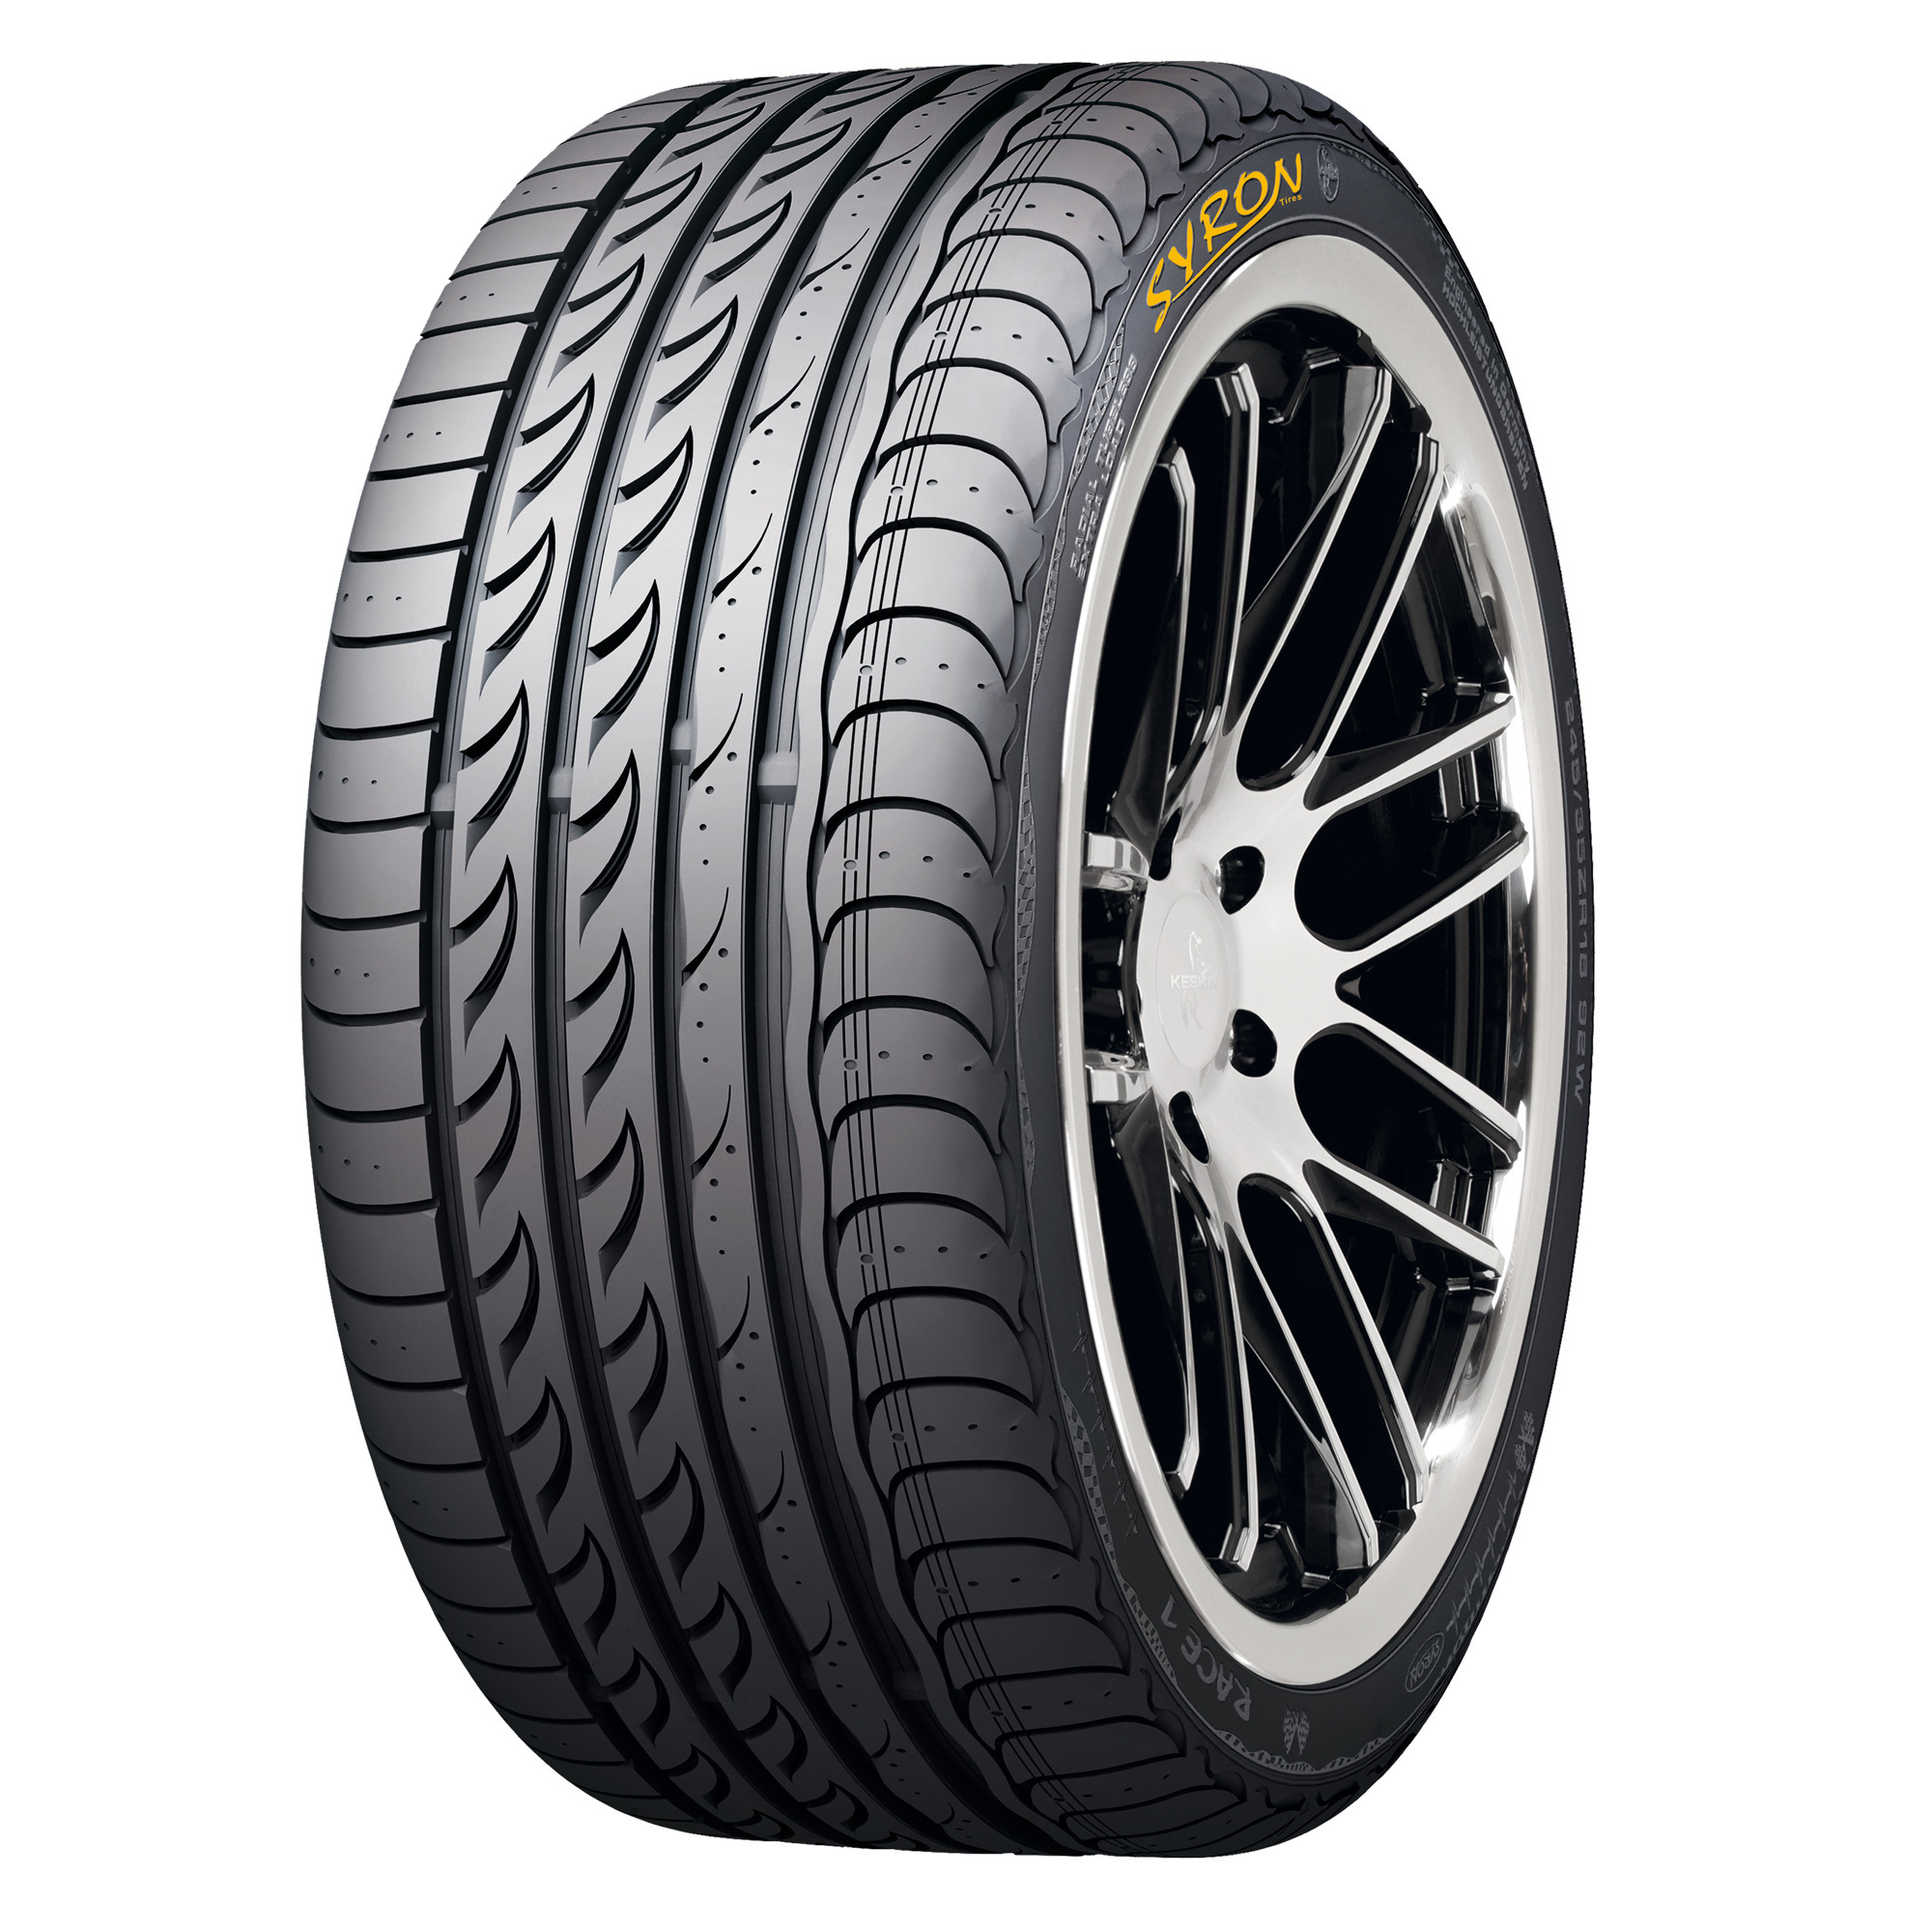 255/30R20 SYRON TIRES RACE1 plus 97W XL